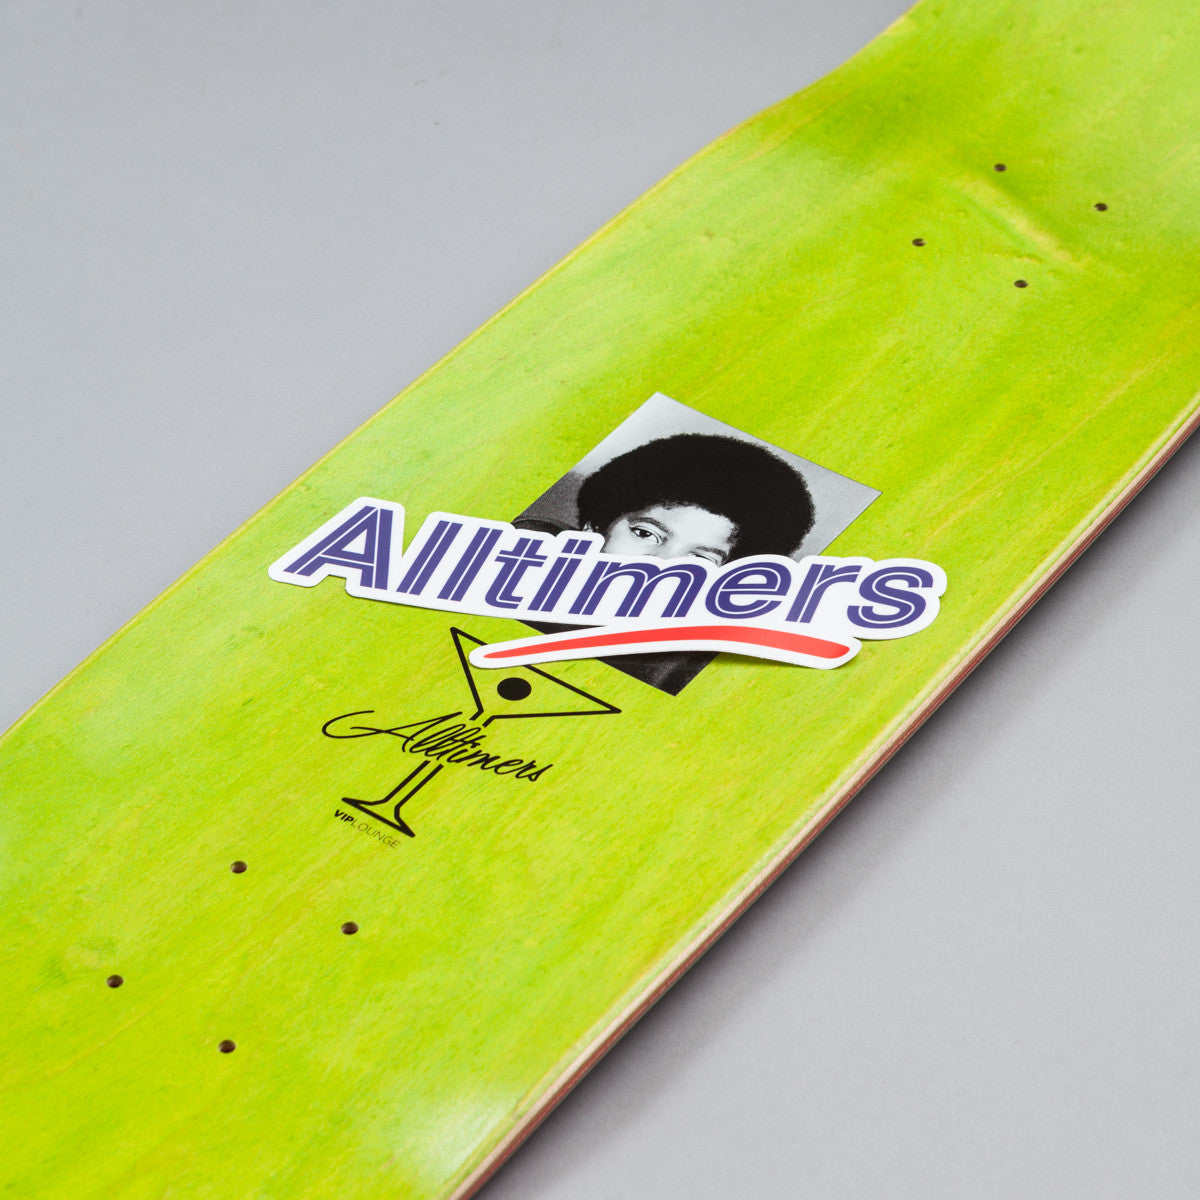 Alltimers Black or White Deck - 8.3""